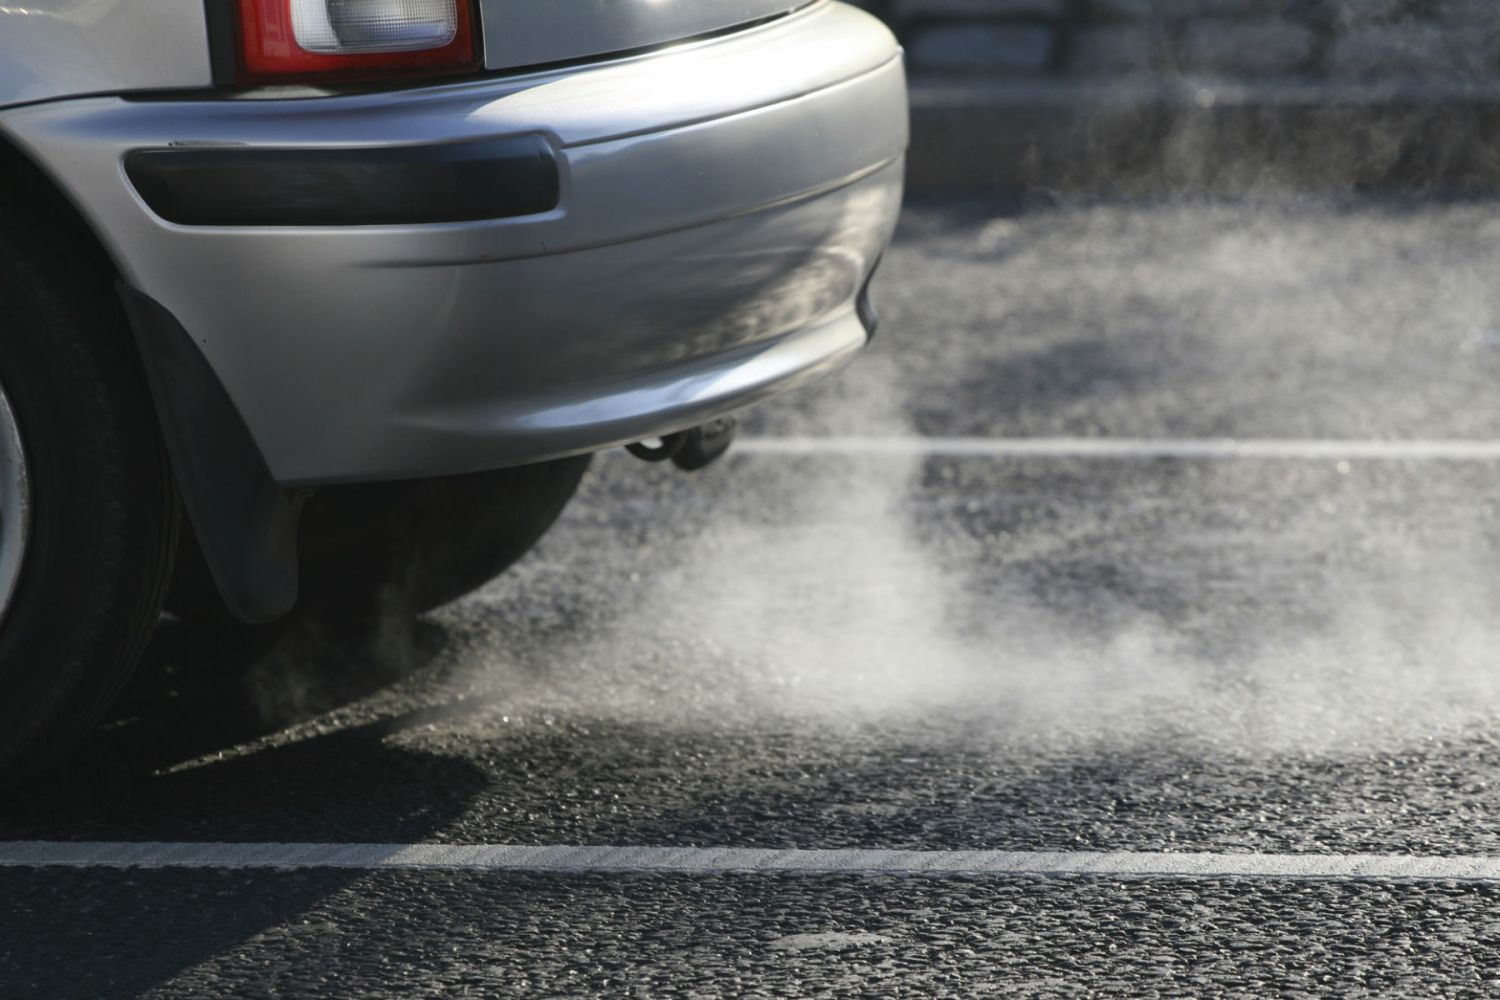 Parents warned: turn your engines off outside schools or face fines